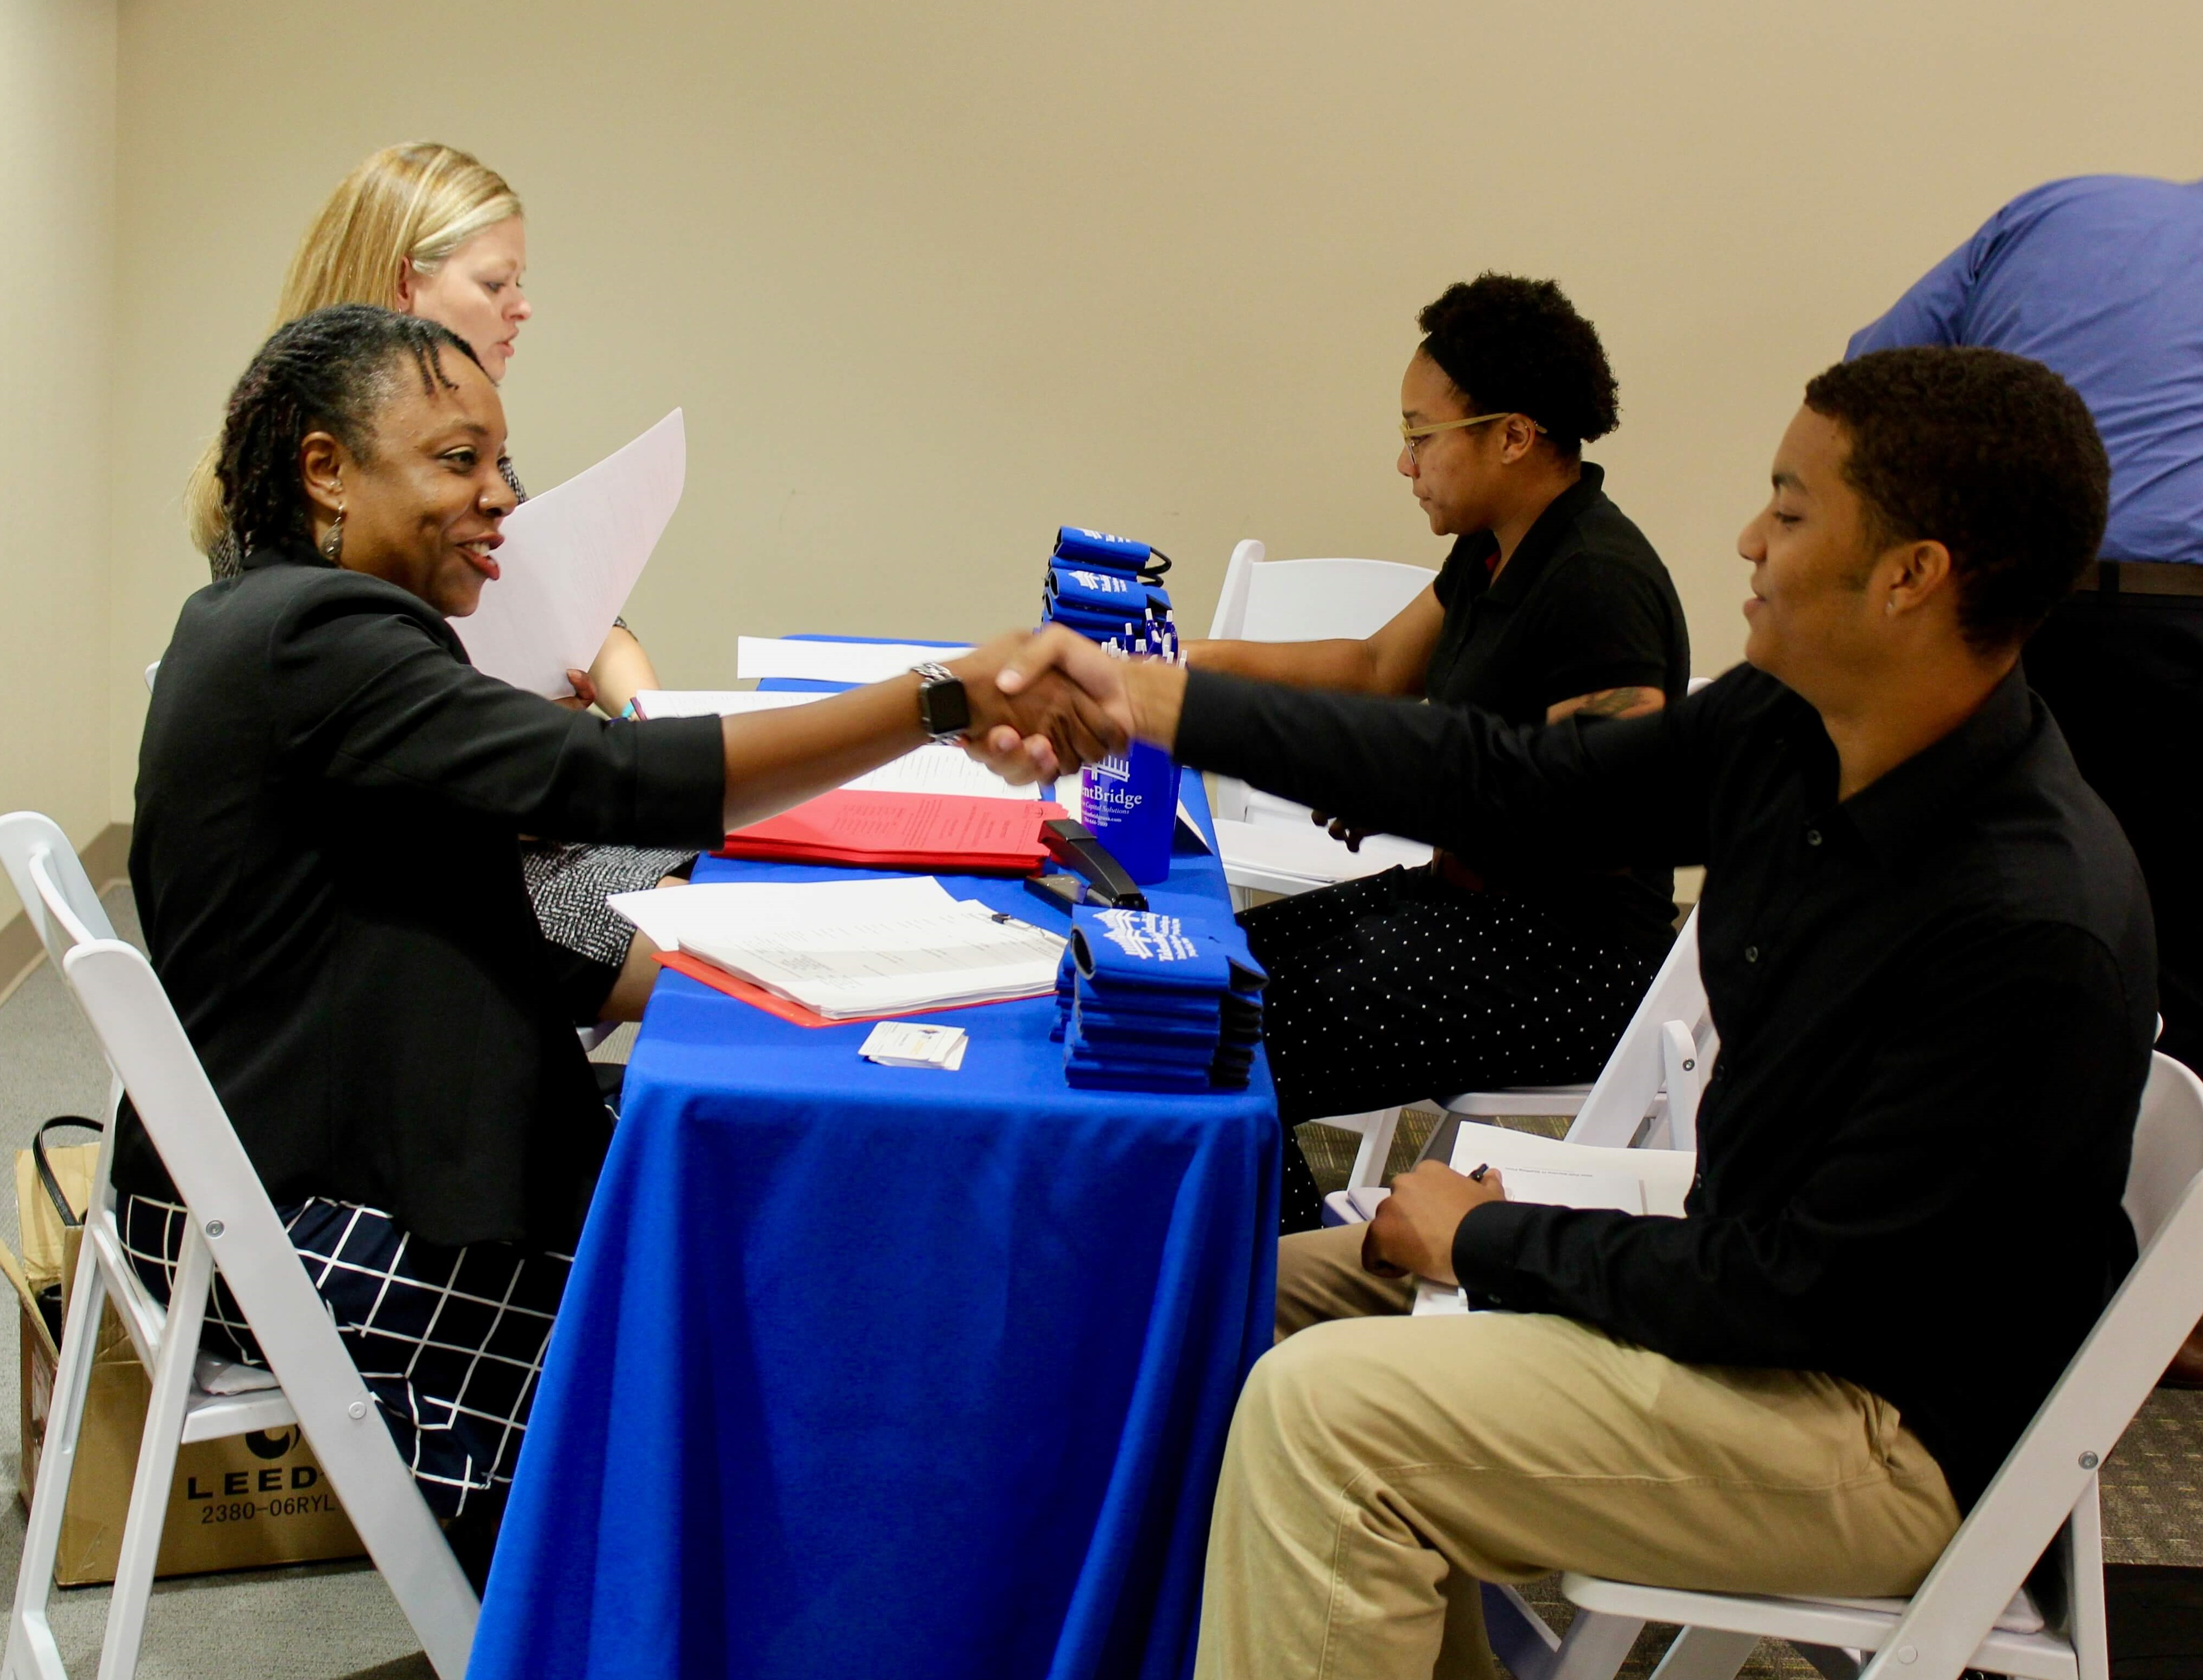 Grads meeting with employers